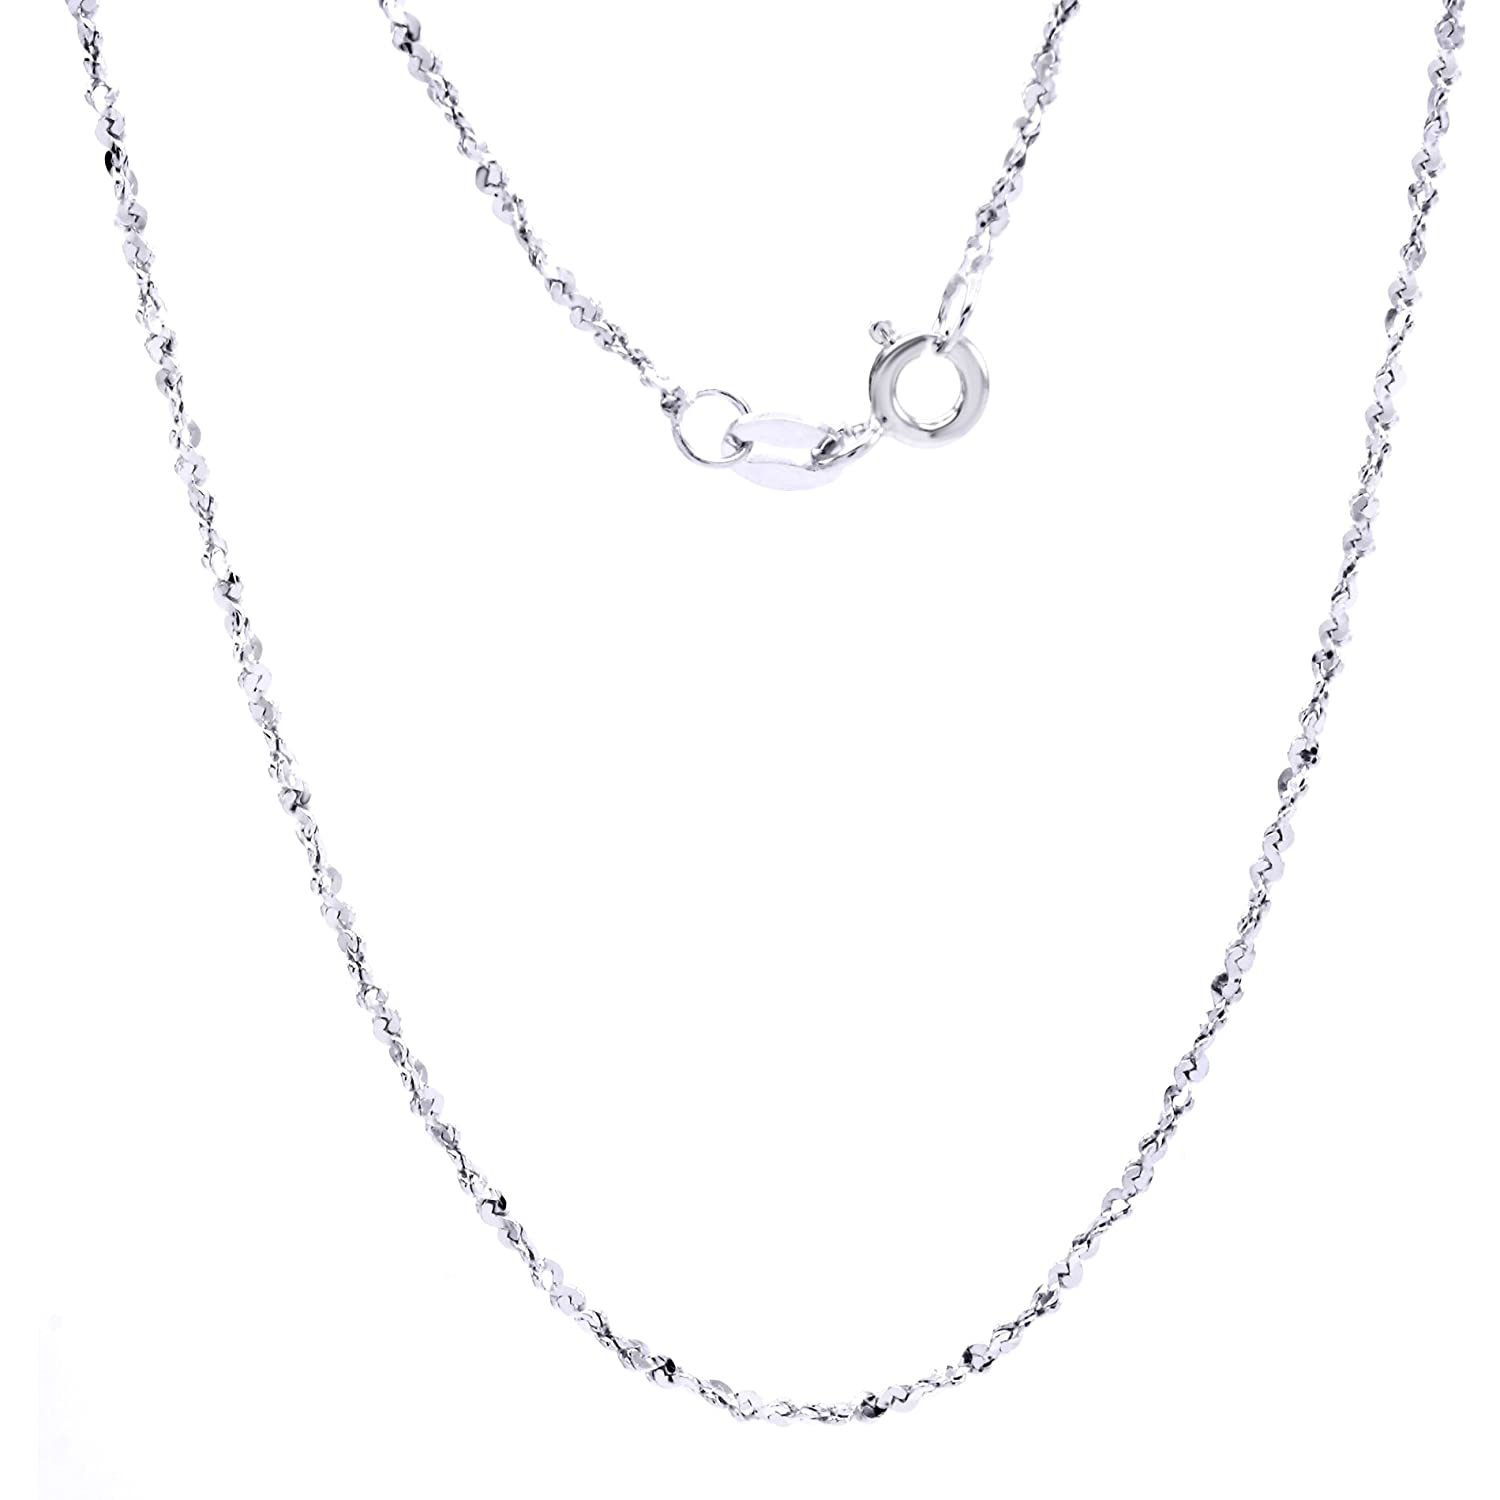 1.26mm Jewel Zone US Sterling Silver Italian Crafted 16 Sparkle Chain Necklace